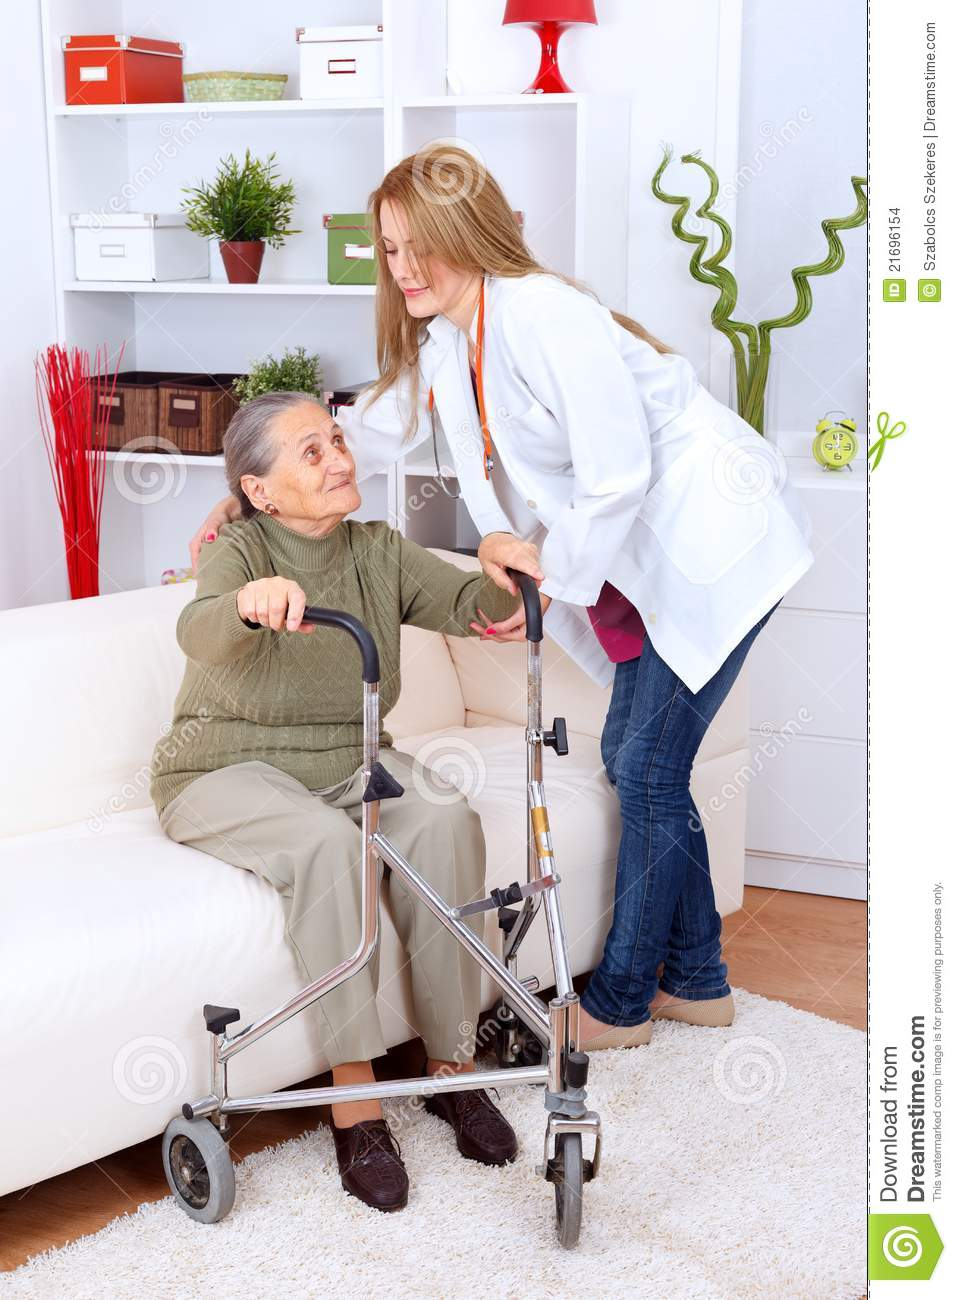 Nursing Home Care Stock Photo. Image Of Therapy, Treatment